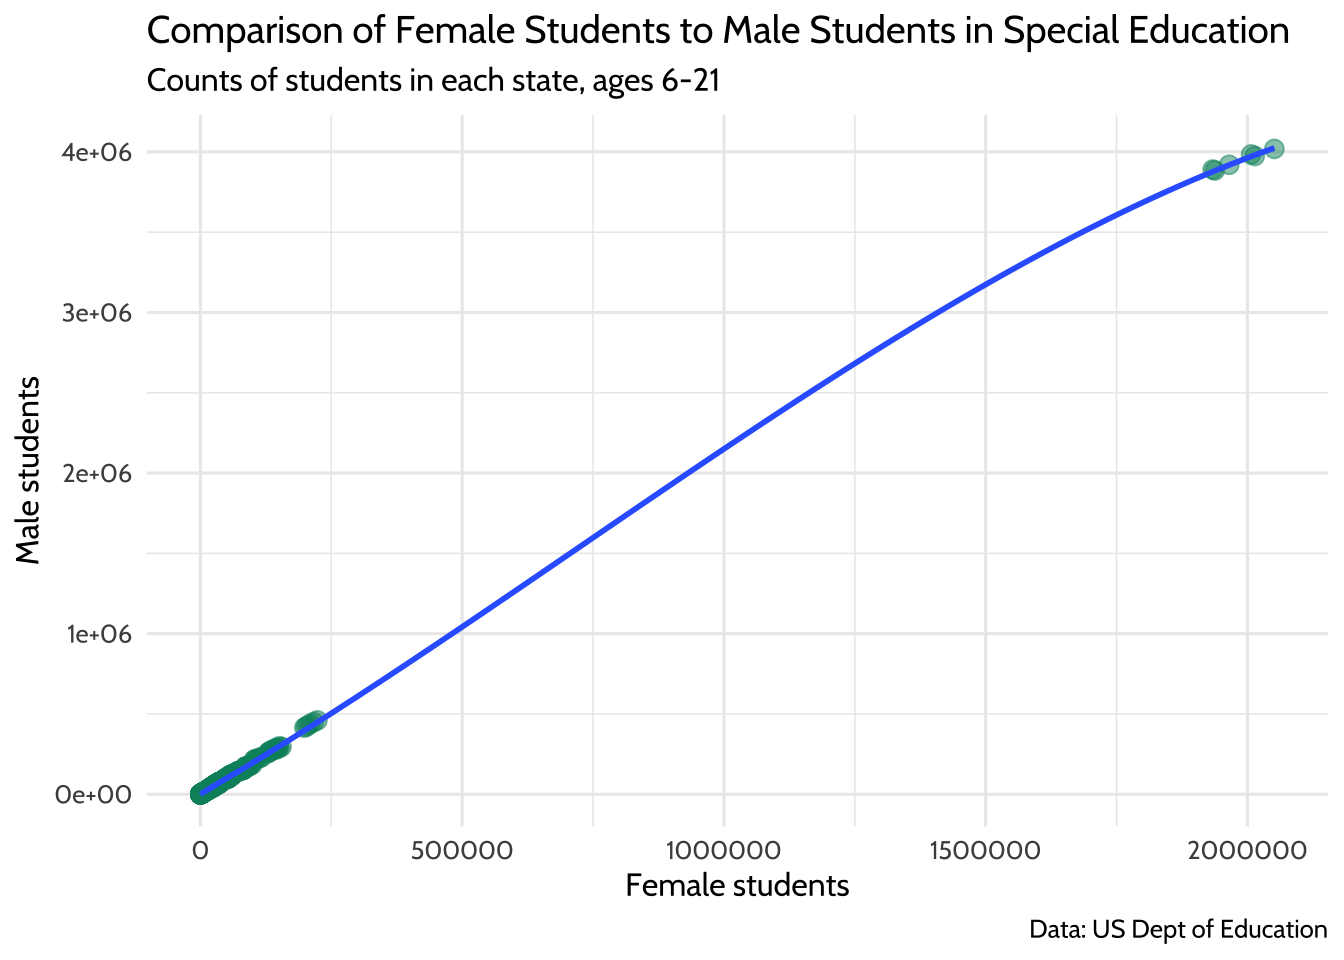 Comparison of Female Students to Male Students in Special Education